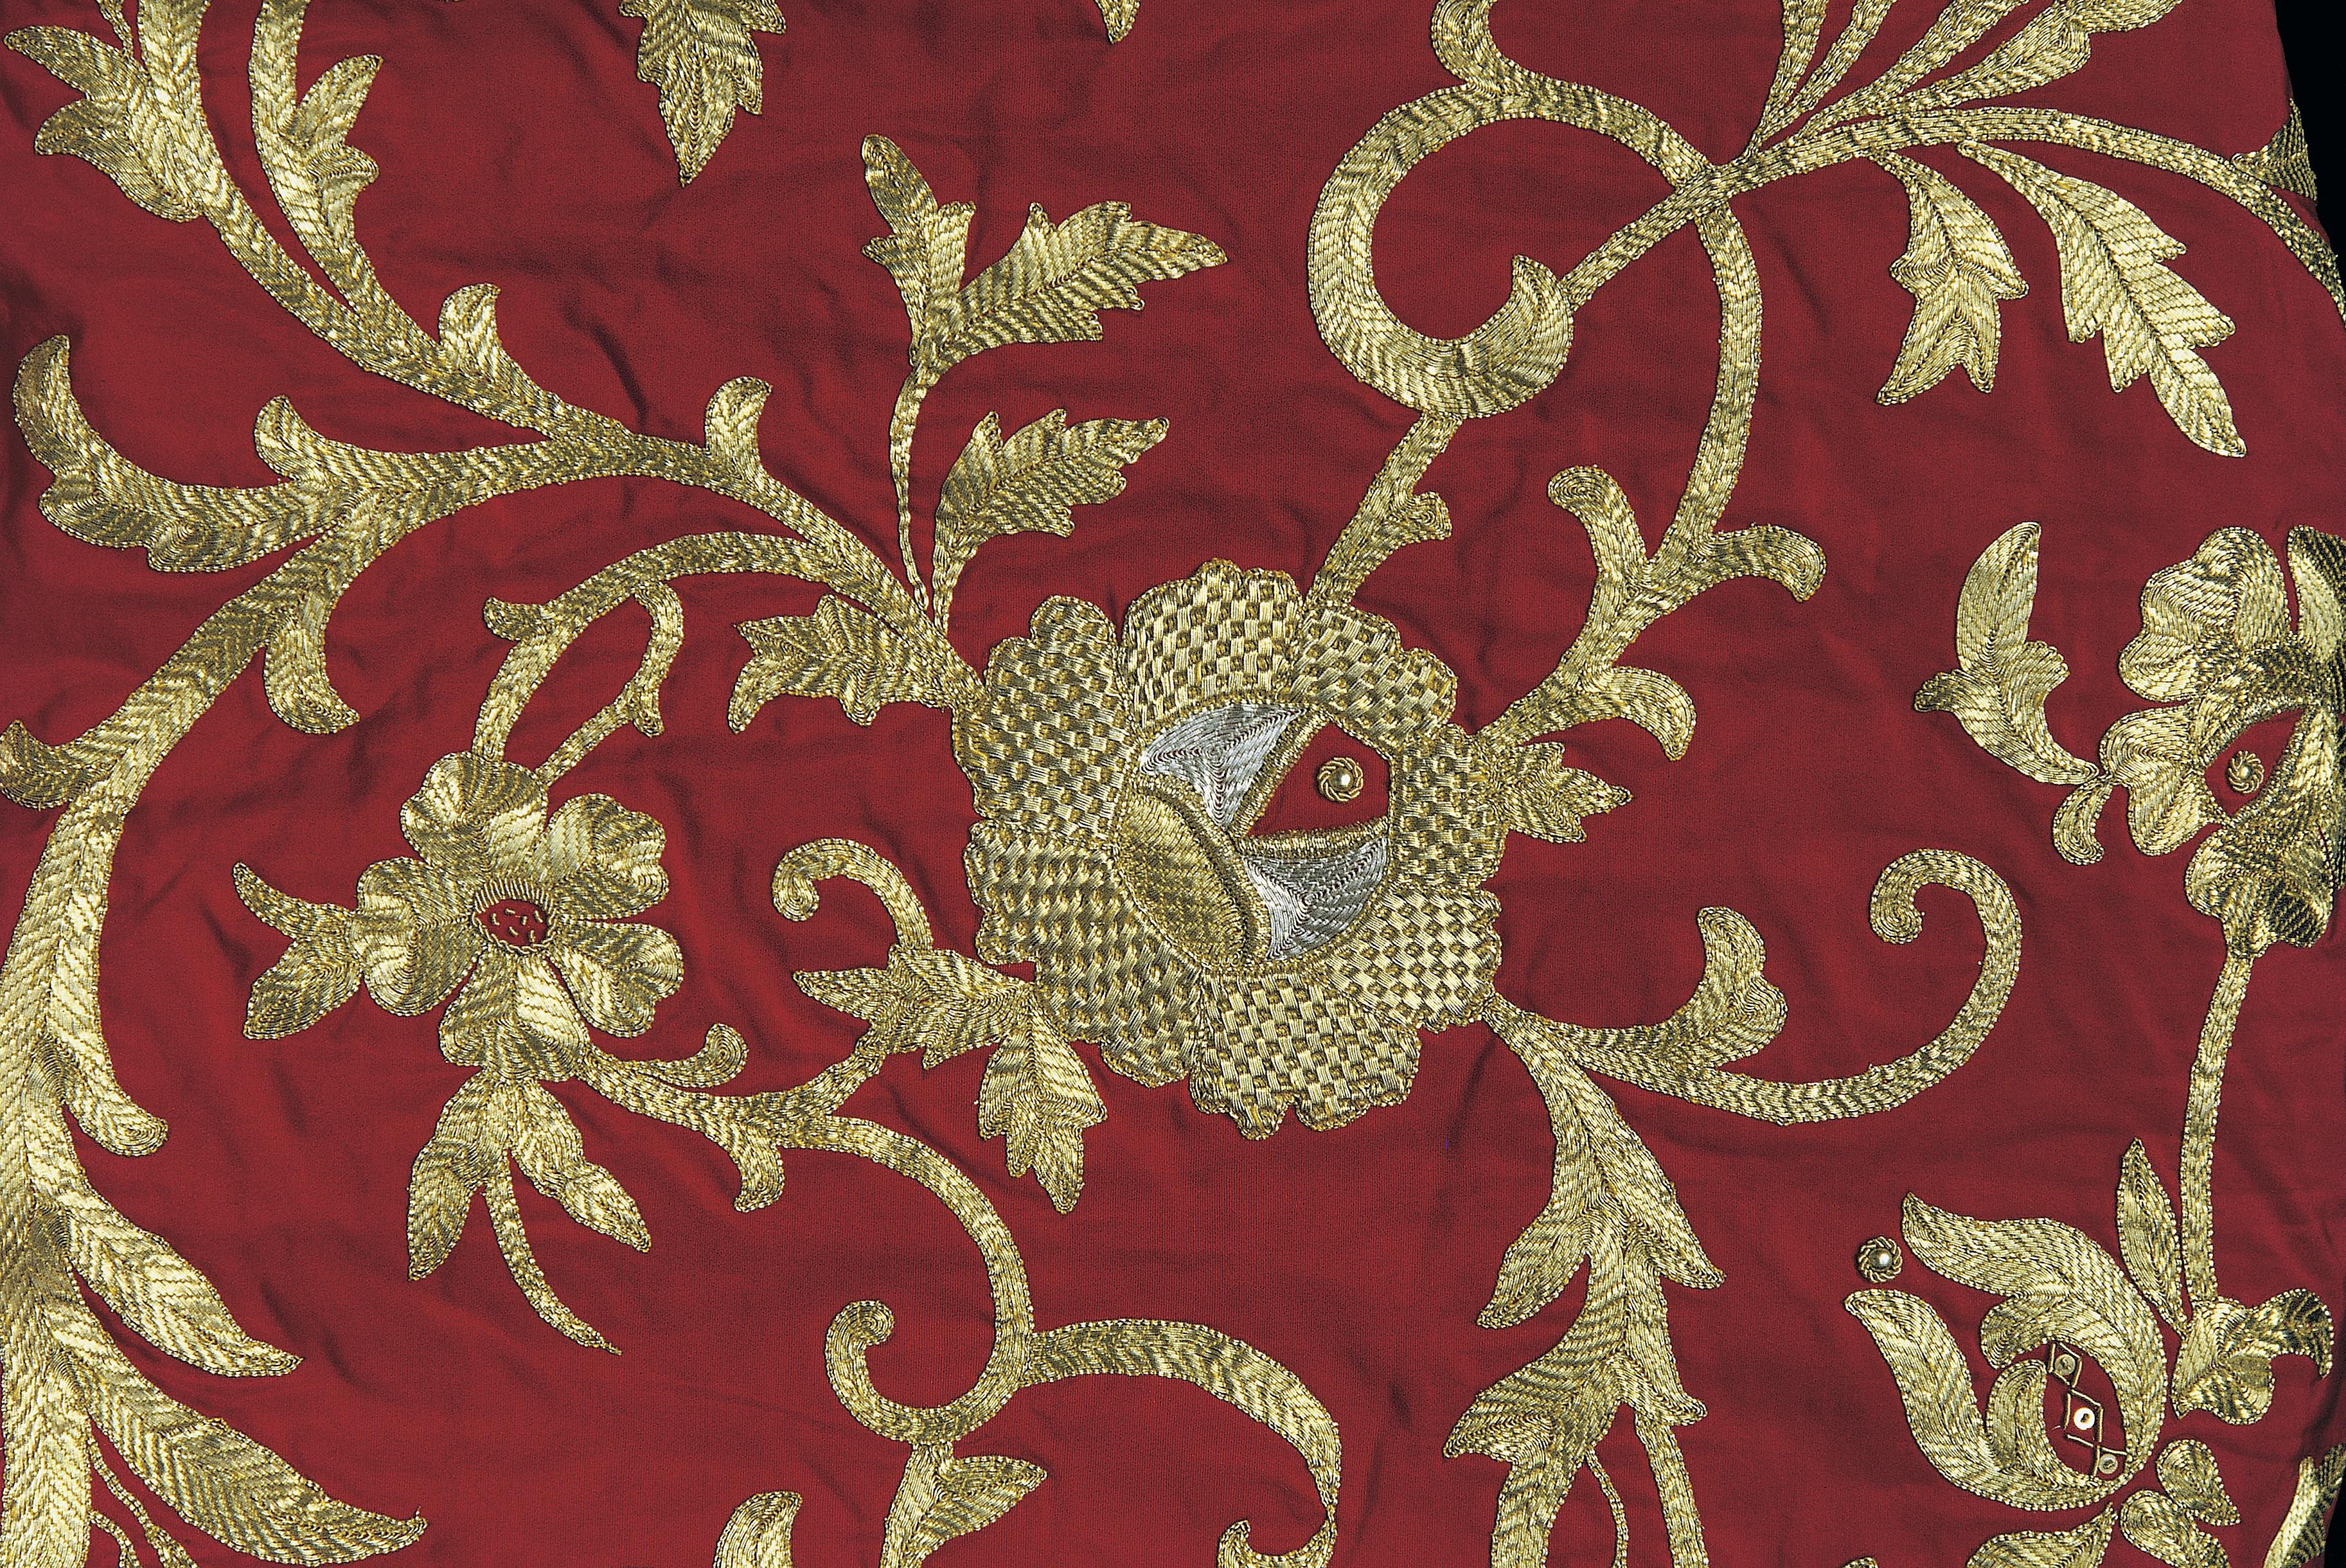 Both gold and silver can be drawn into threads and used to embroider cloth.